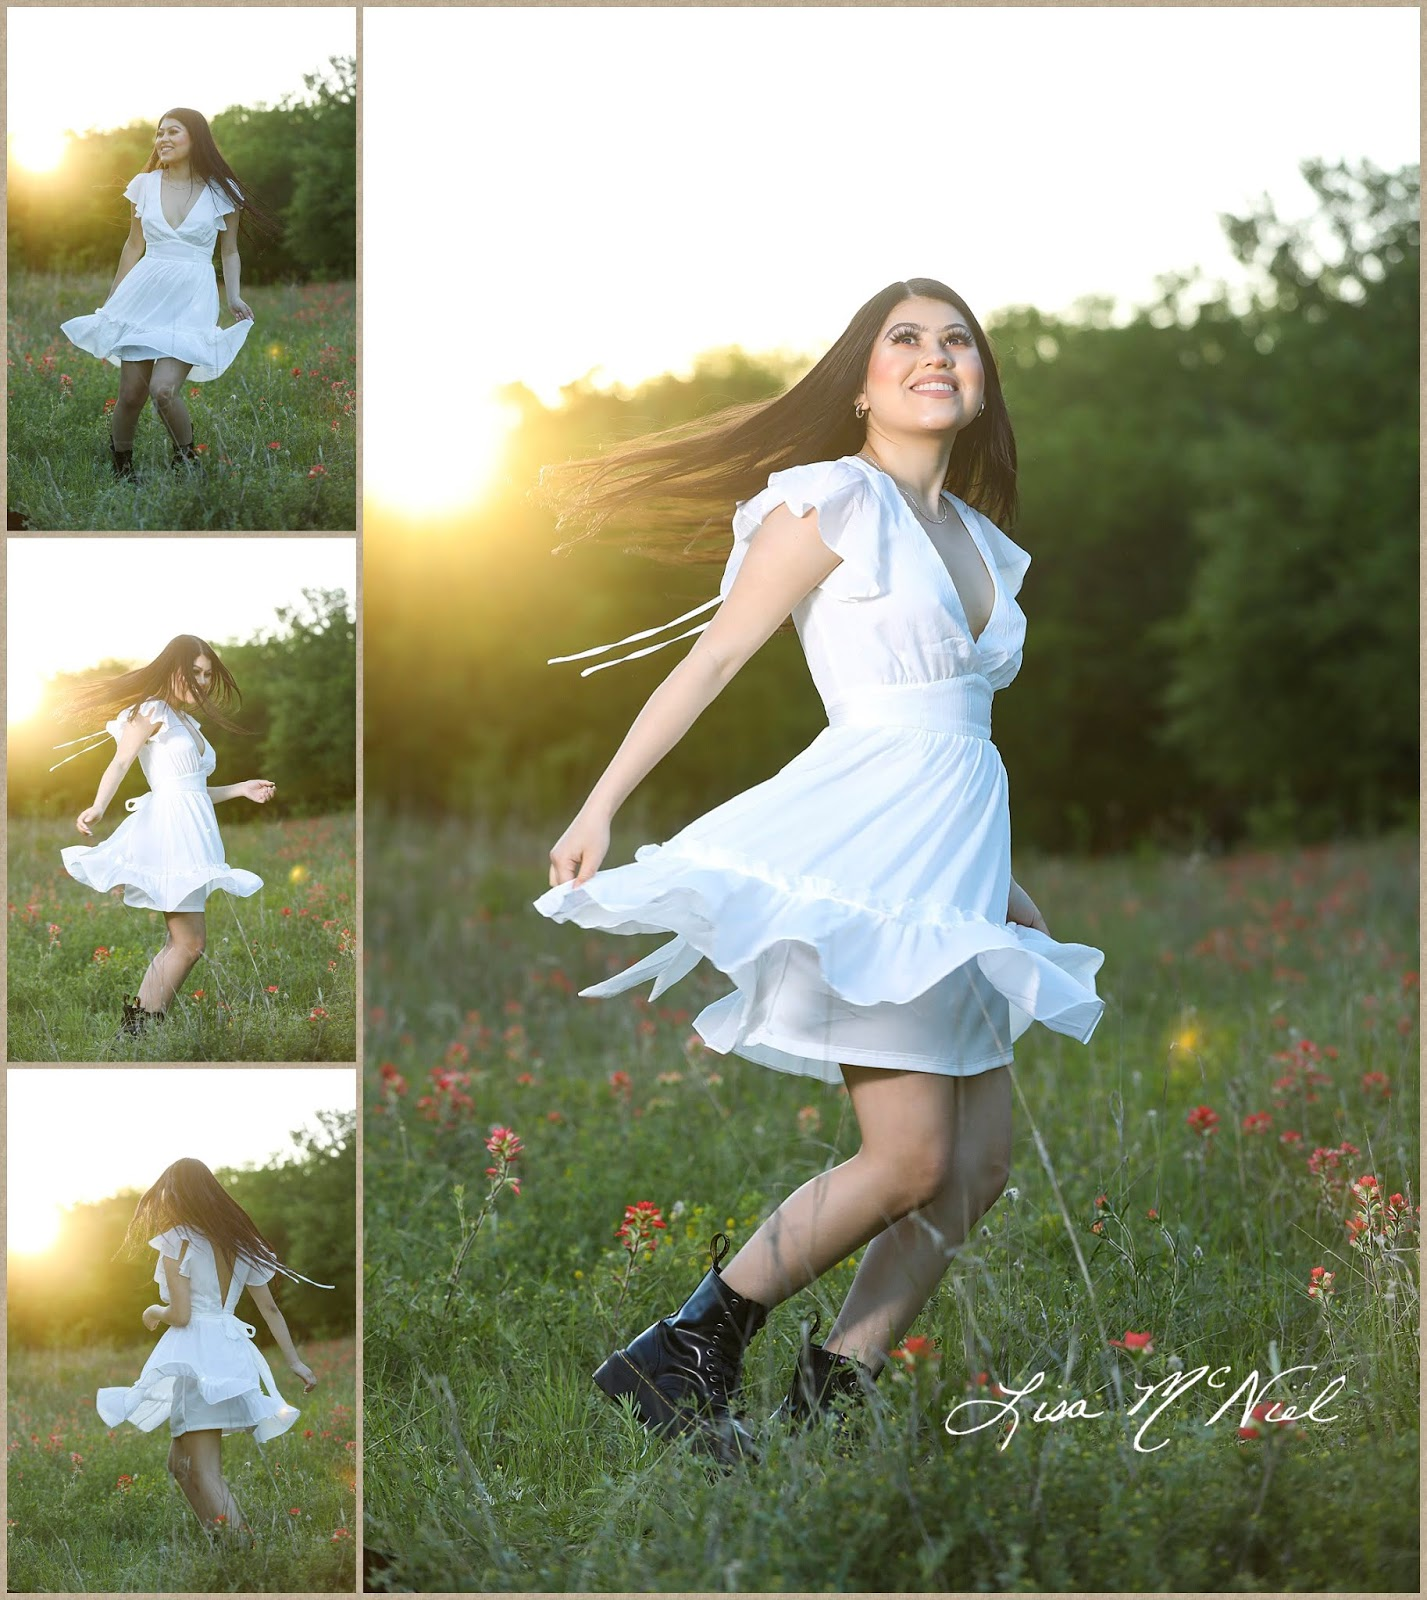 teen girl in white dress in wildflowers spinning